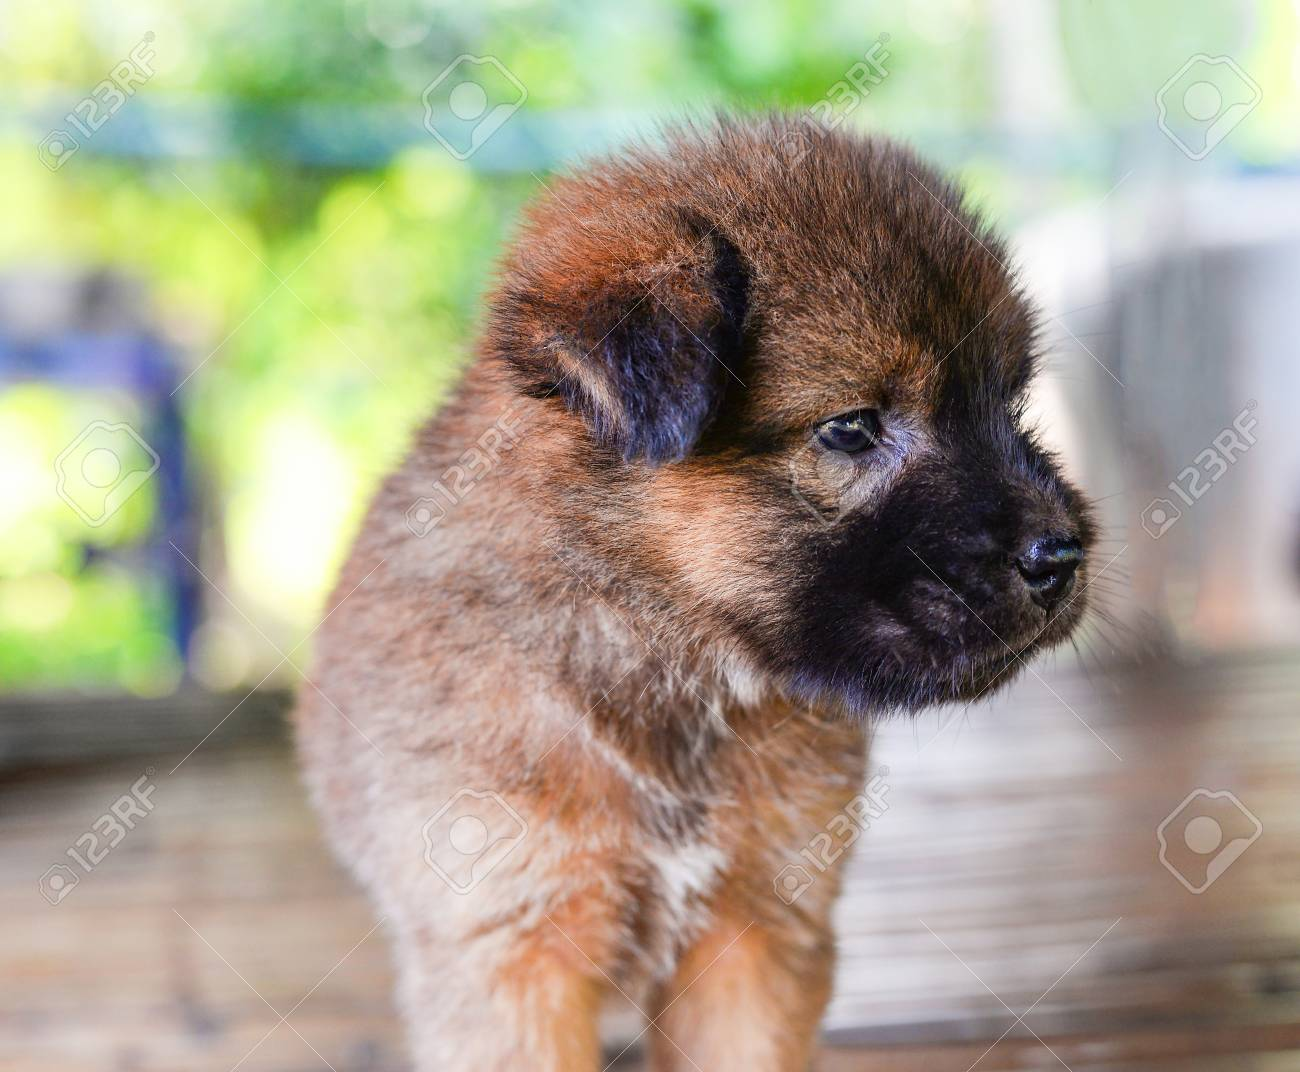 Puppy Cute Dog Baby Brown Puppy Dog Asia Thai Stock Photo Picture And Royalty Free Image Image 114134825